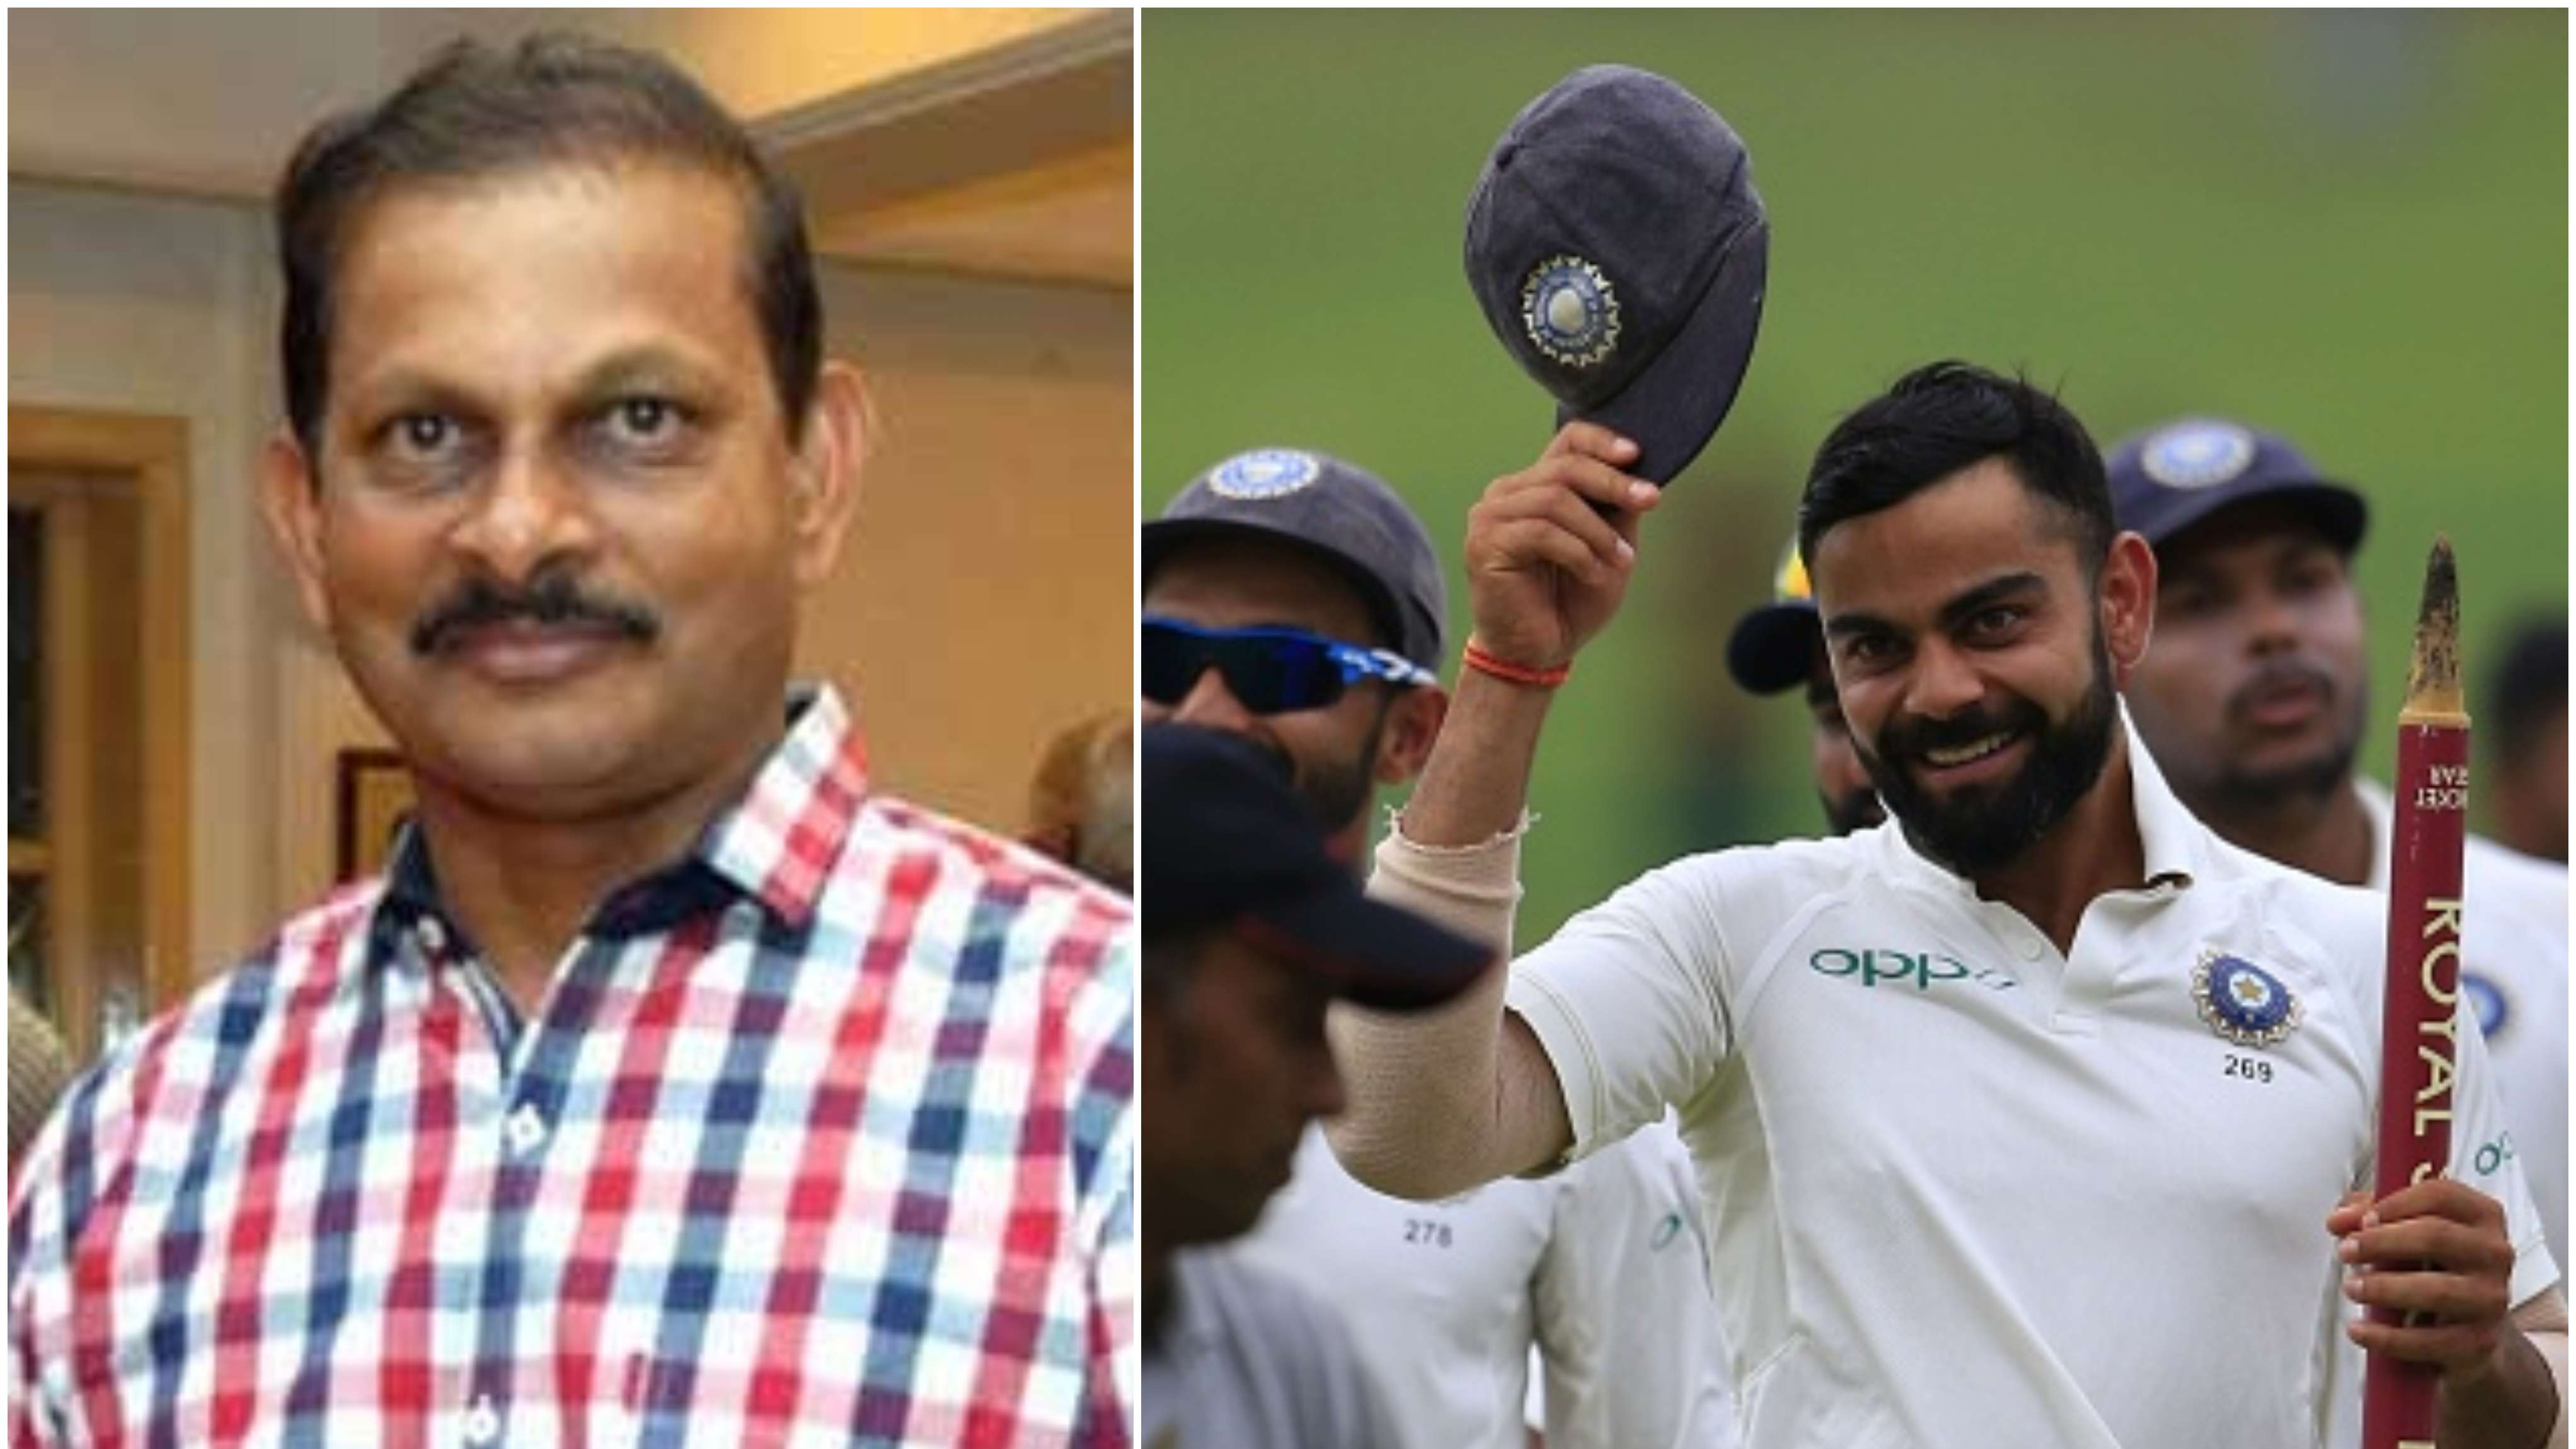 ENG v IND 2018: Getting off to a start will be very crucial for Virat Kohli, says Lalchand Rajput